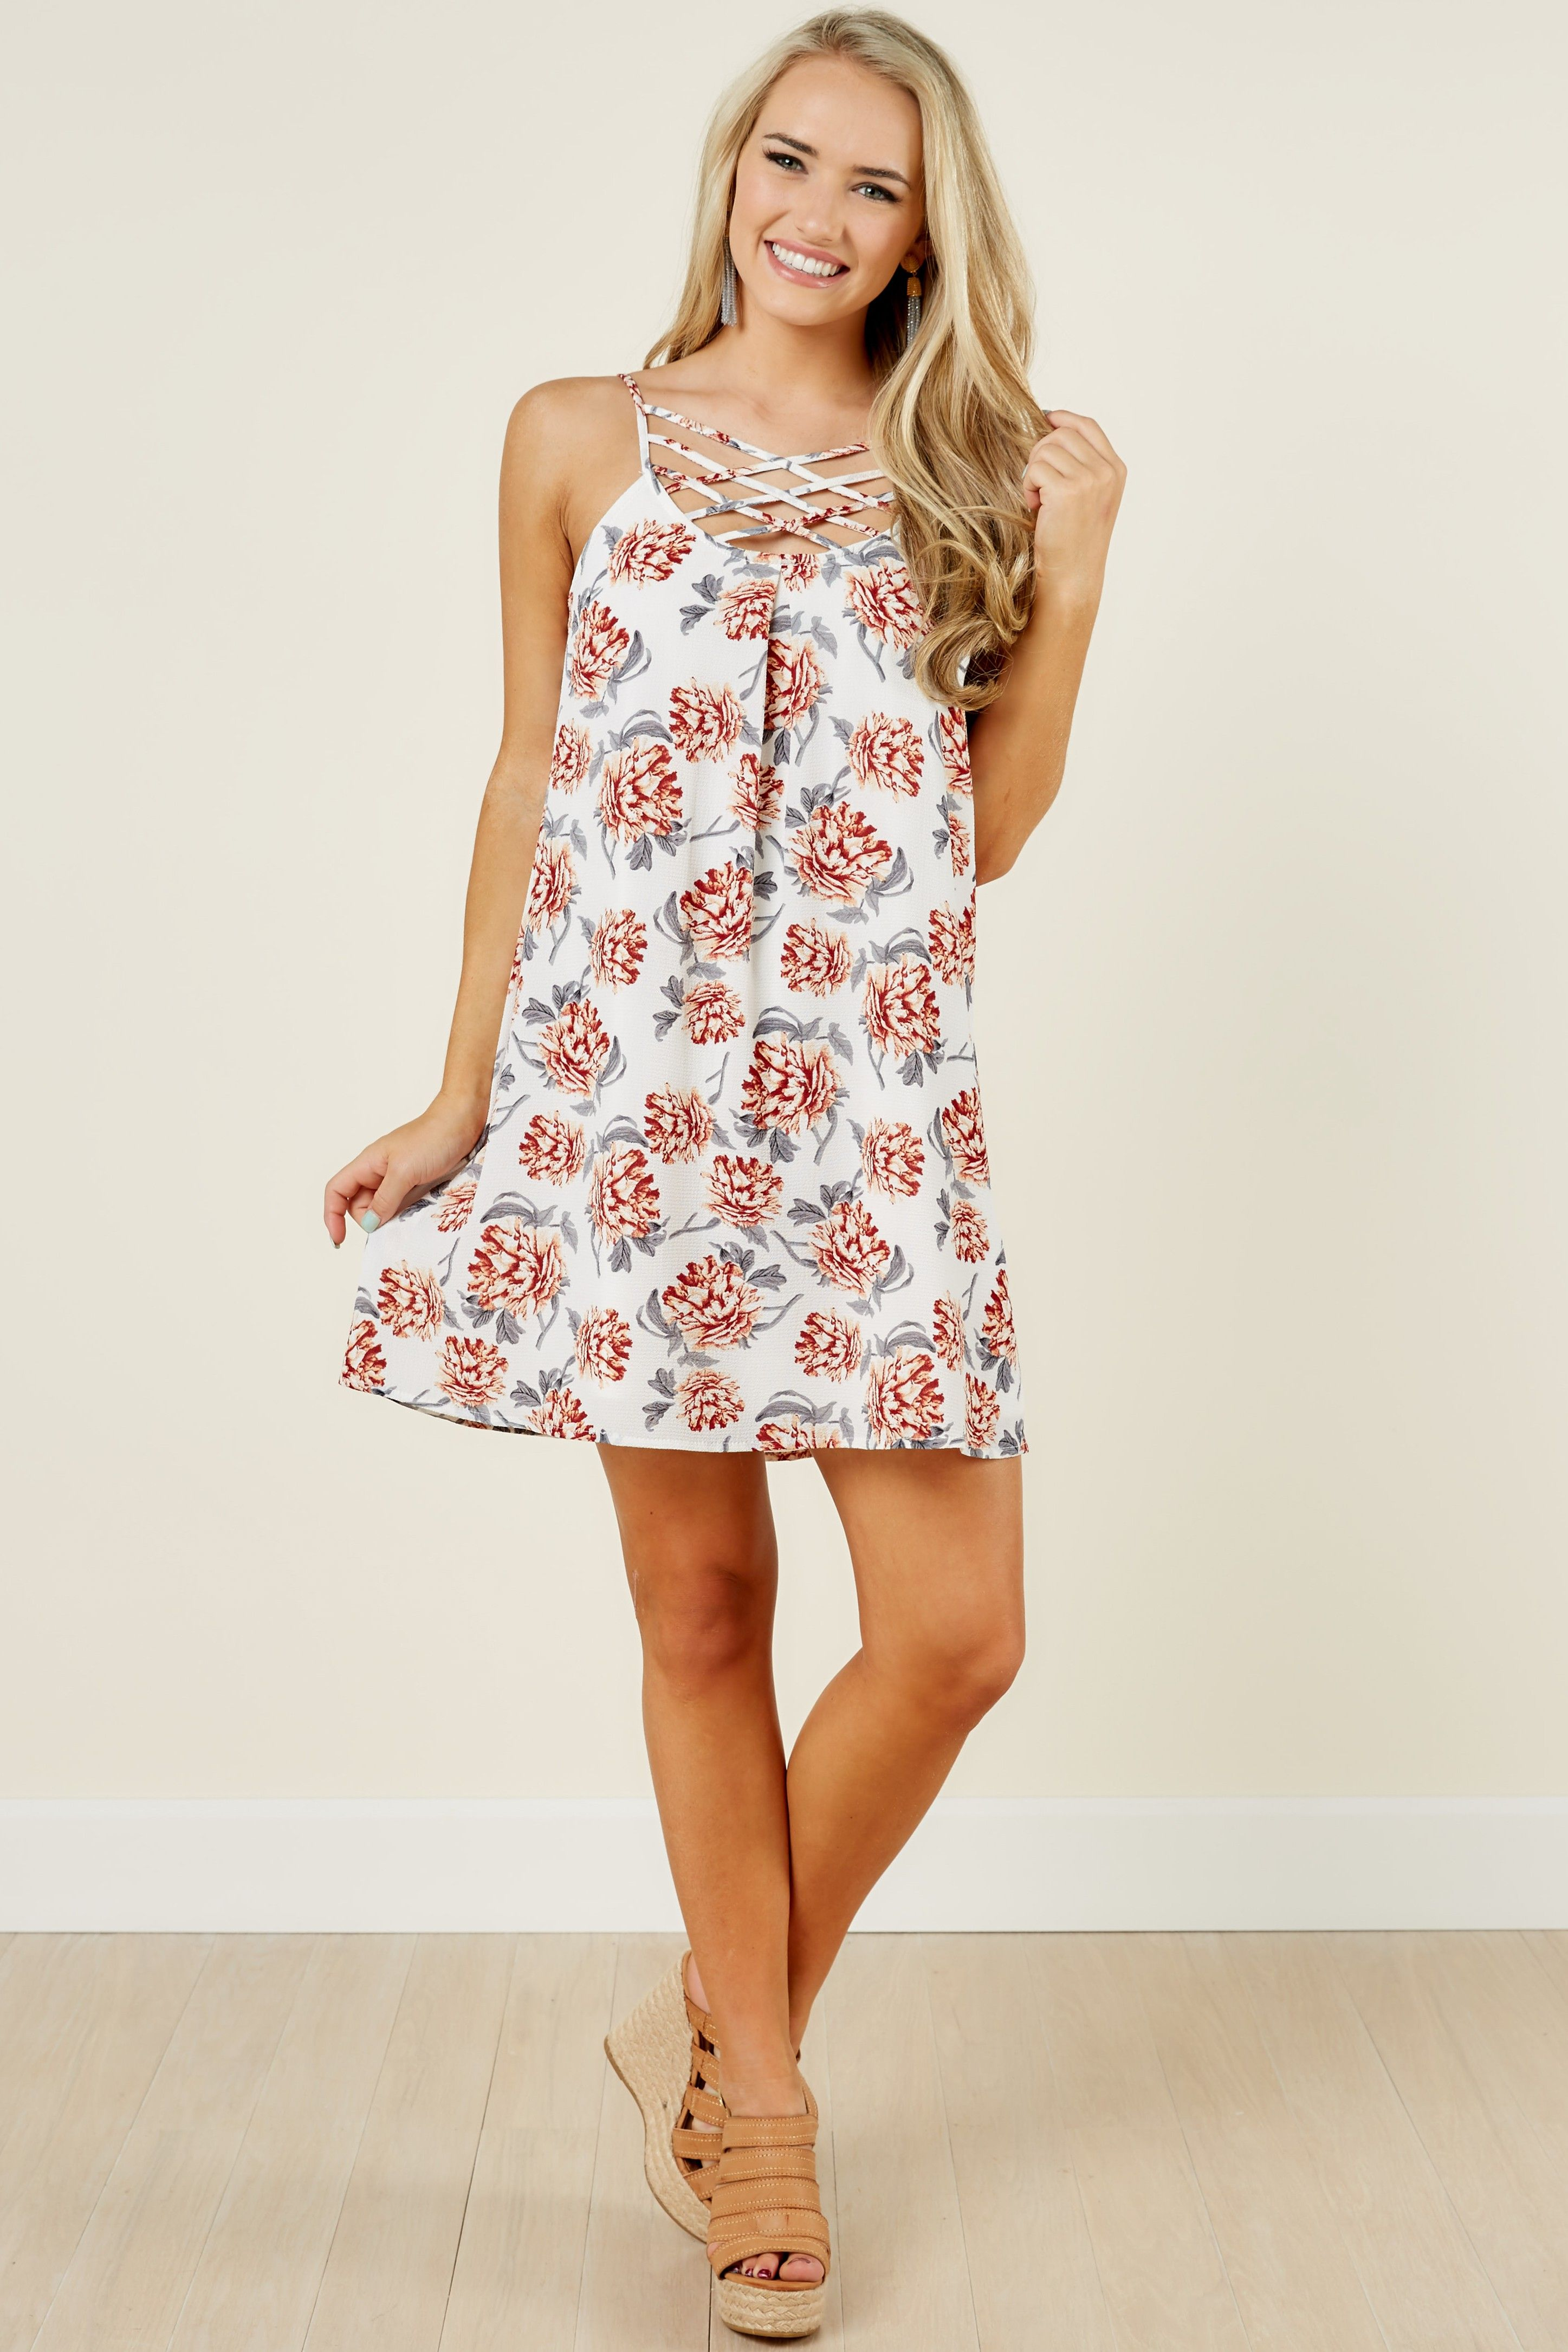 96f1caaeaca Living Breezy Ivory Floral Print Sundress at reddressboutique.com